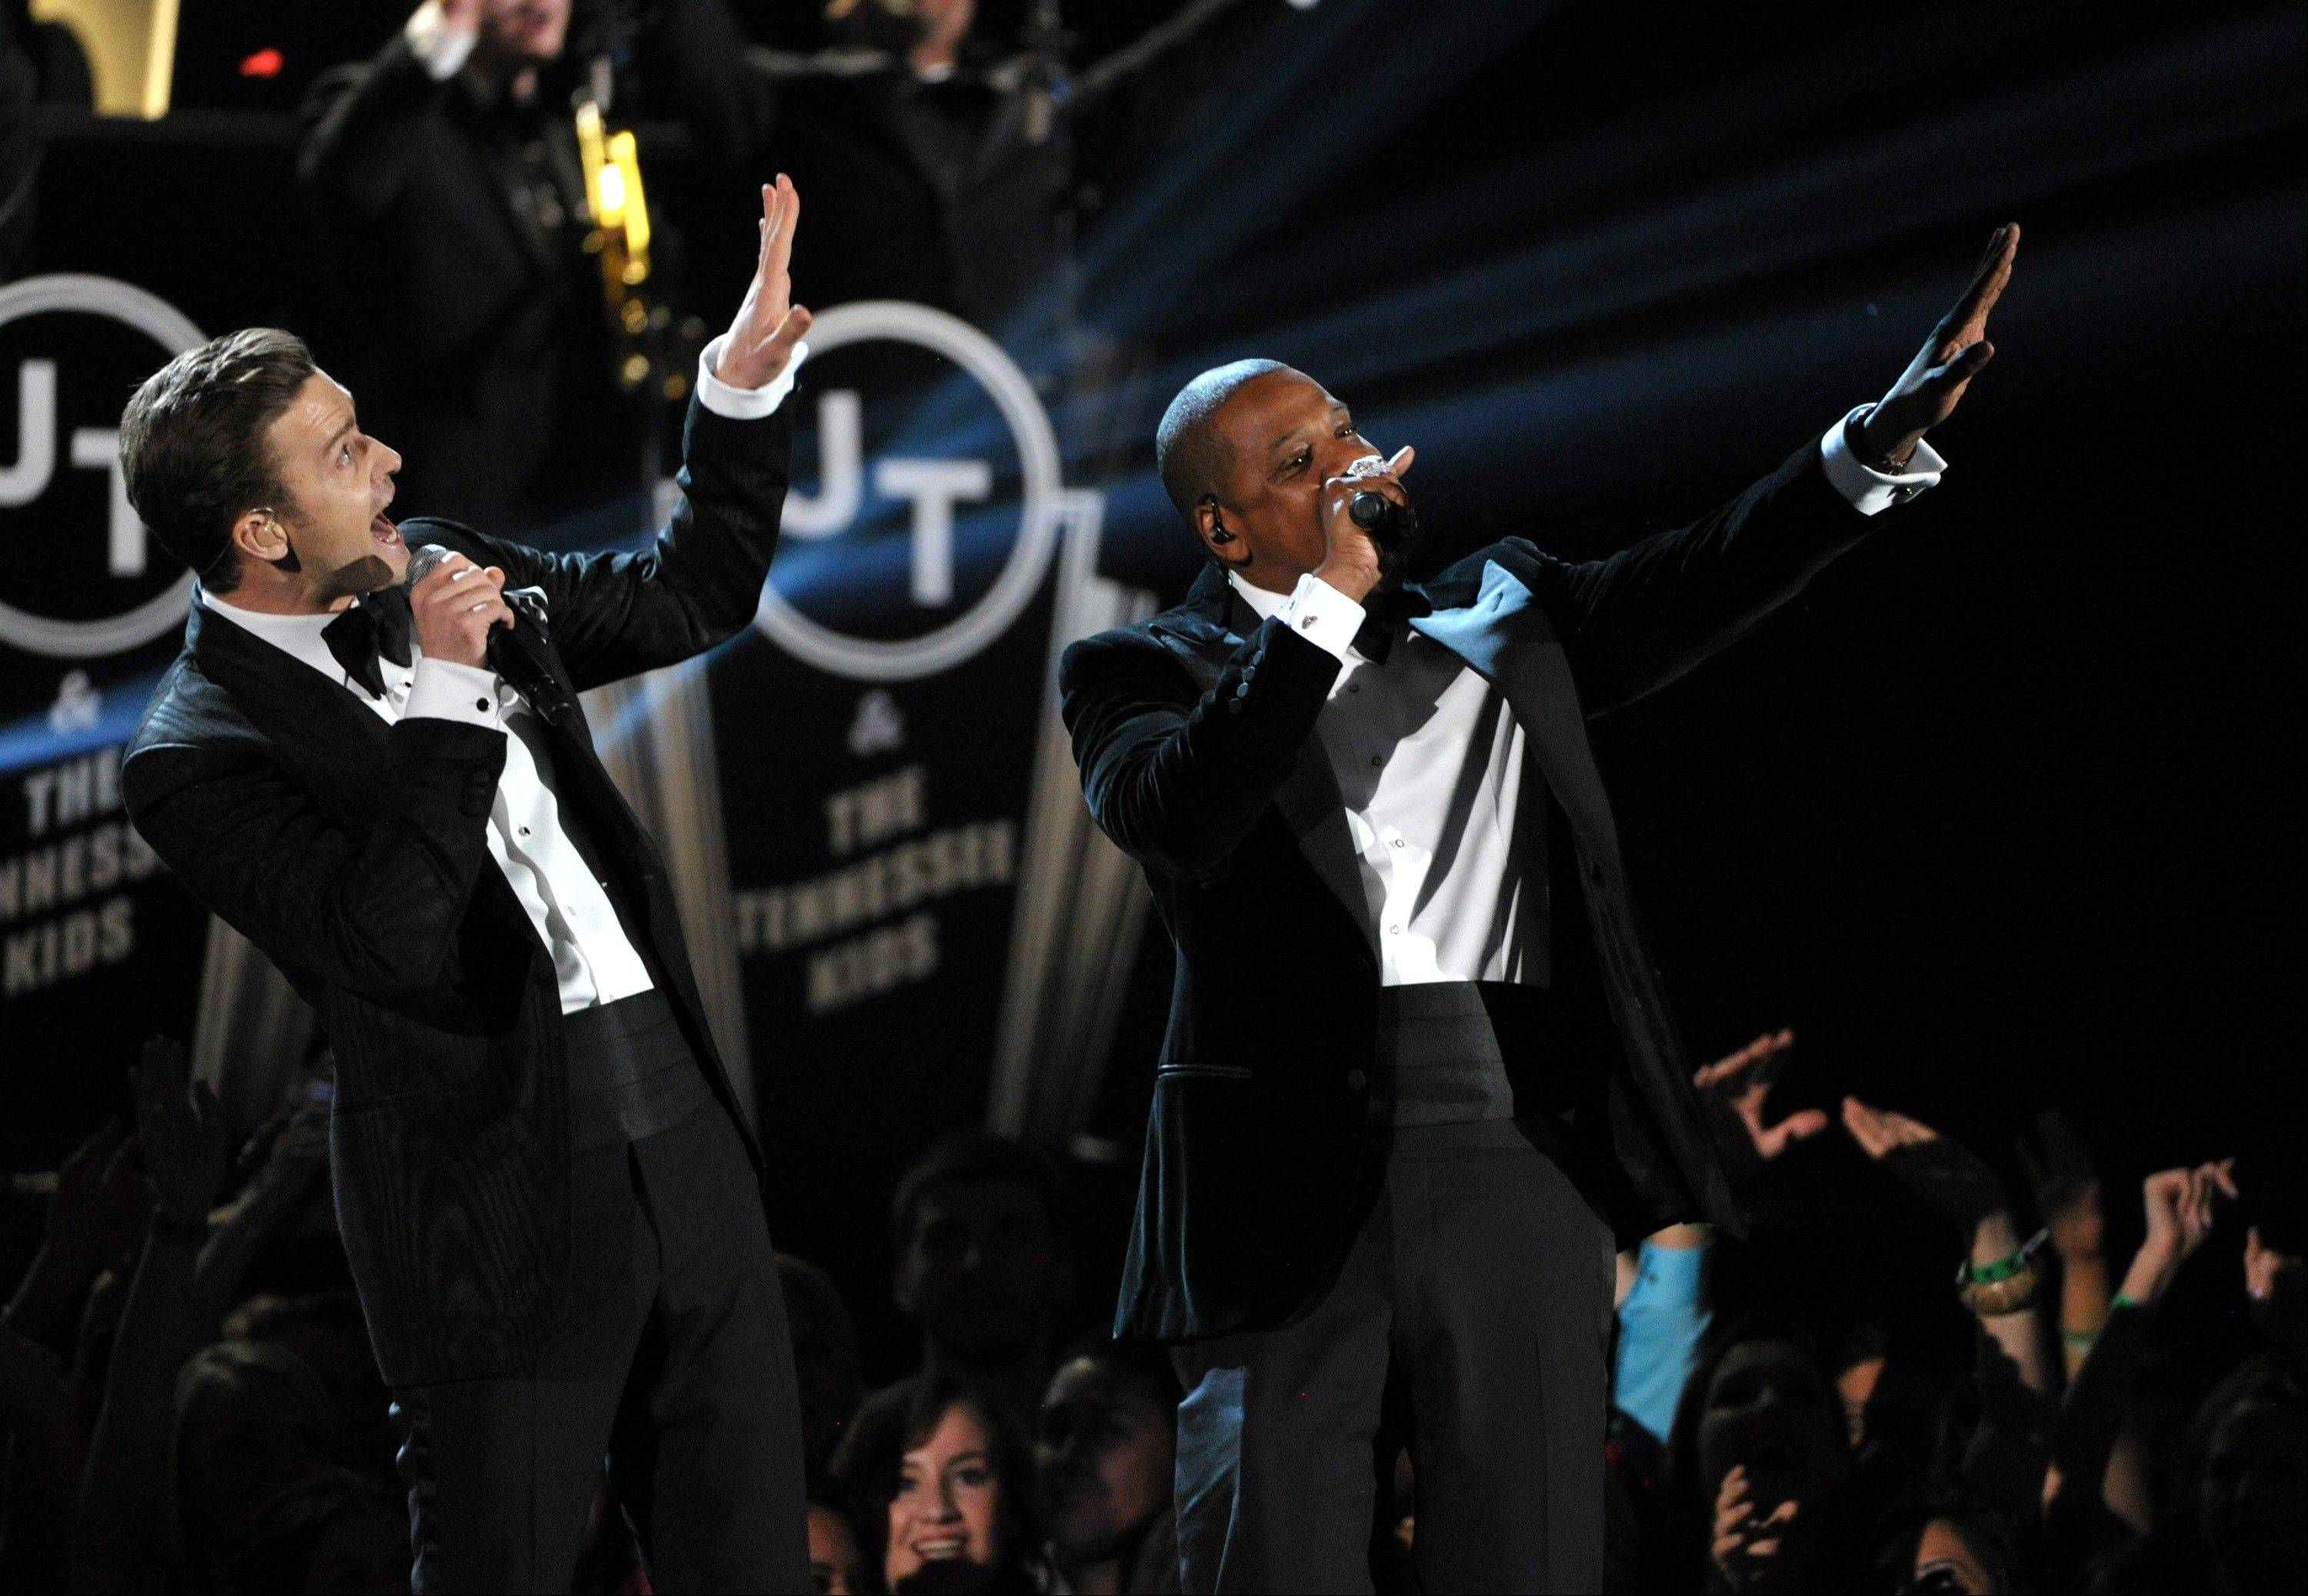 Justin Timberlake, left, and Jay-Z perform on stage at the 55th annual Grammy Awards on Sunday, Feb. 10, 2013, in Los Angeles.